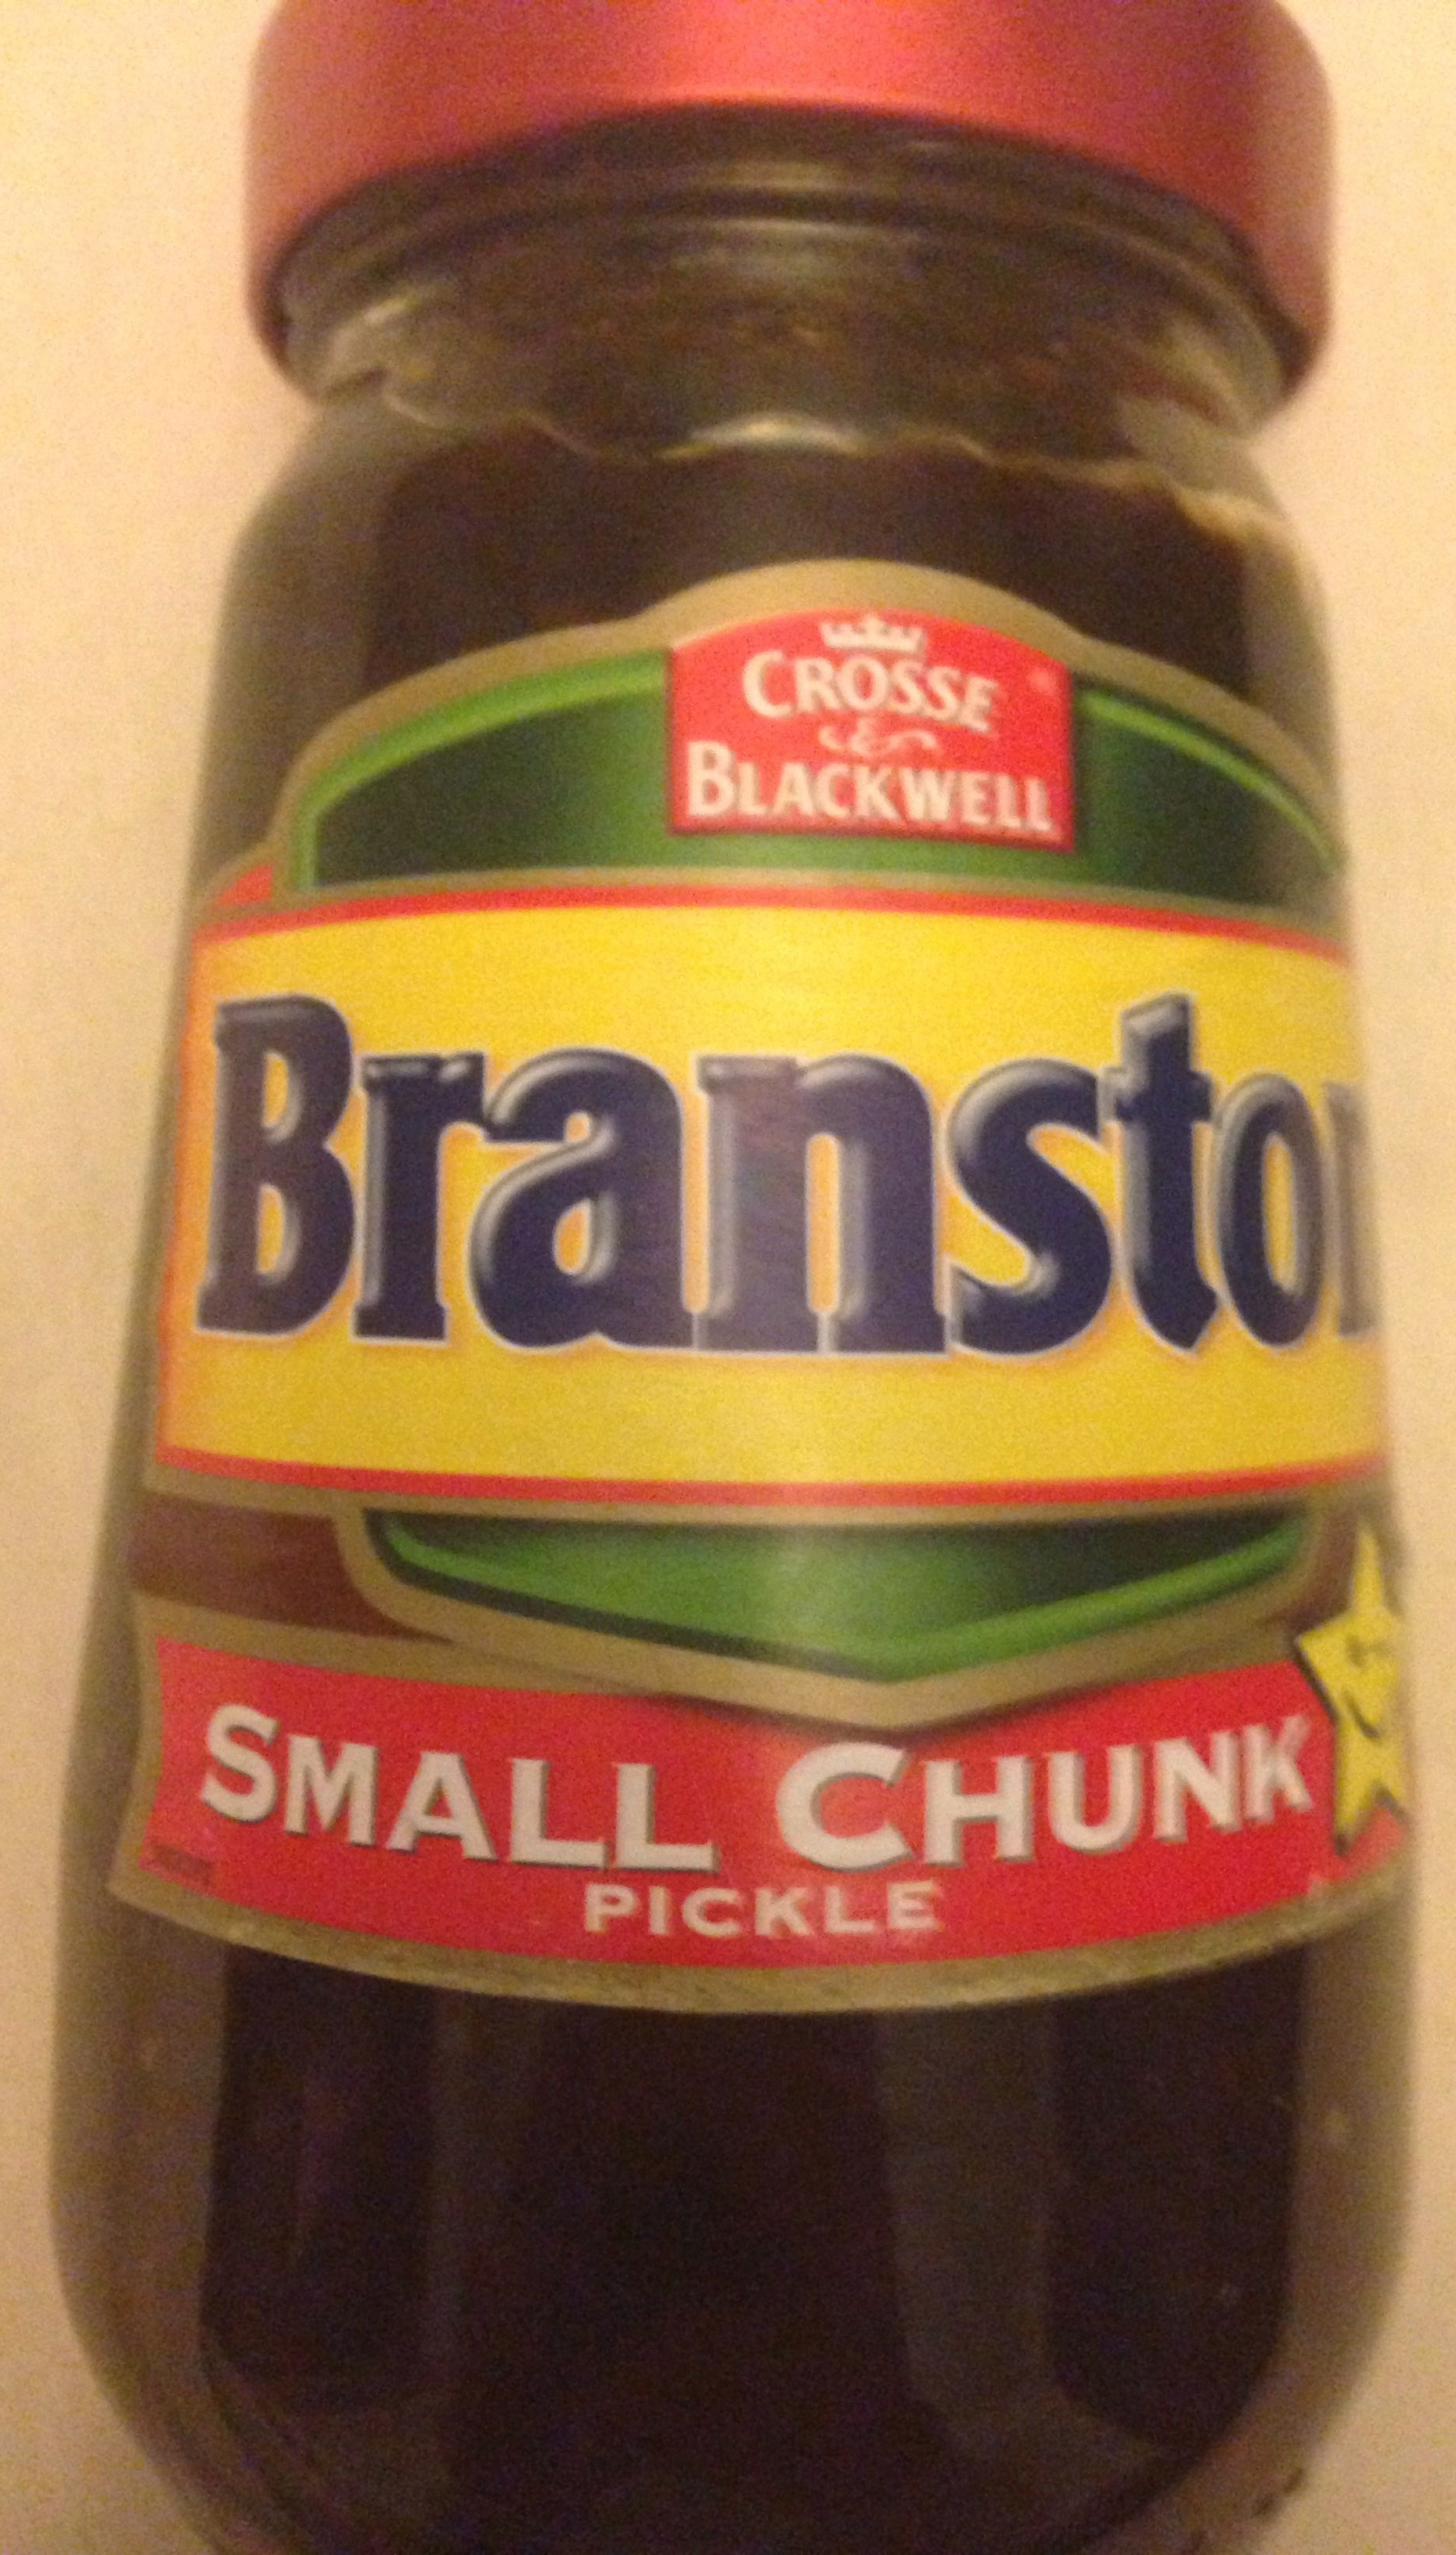 Branston small chunk pickle - Product